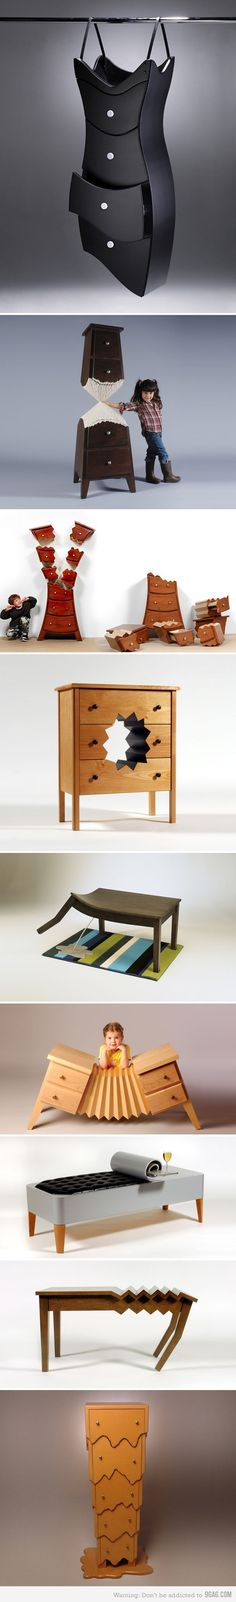 I love wacky, whimsical furniture. Love their stuff. Way, way out of my price range though.